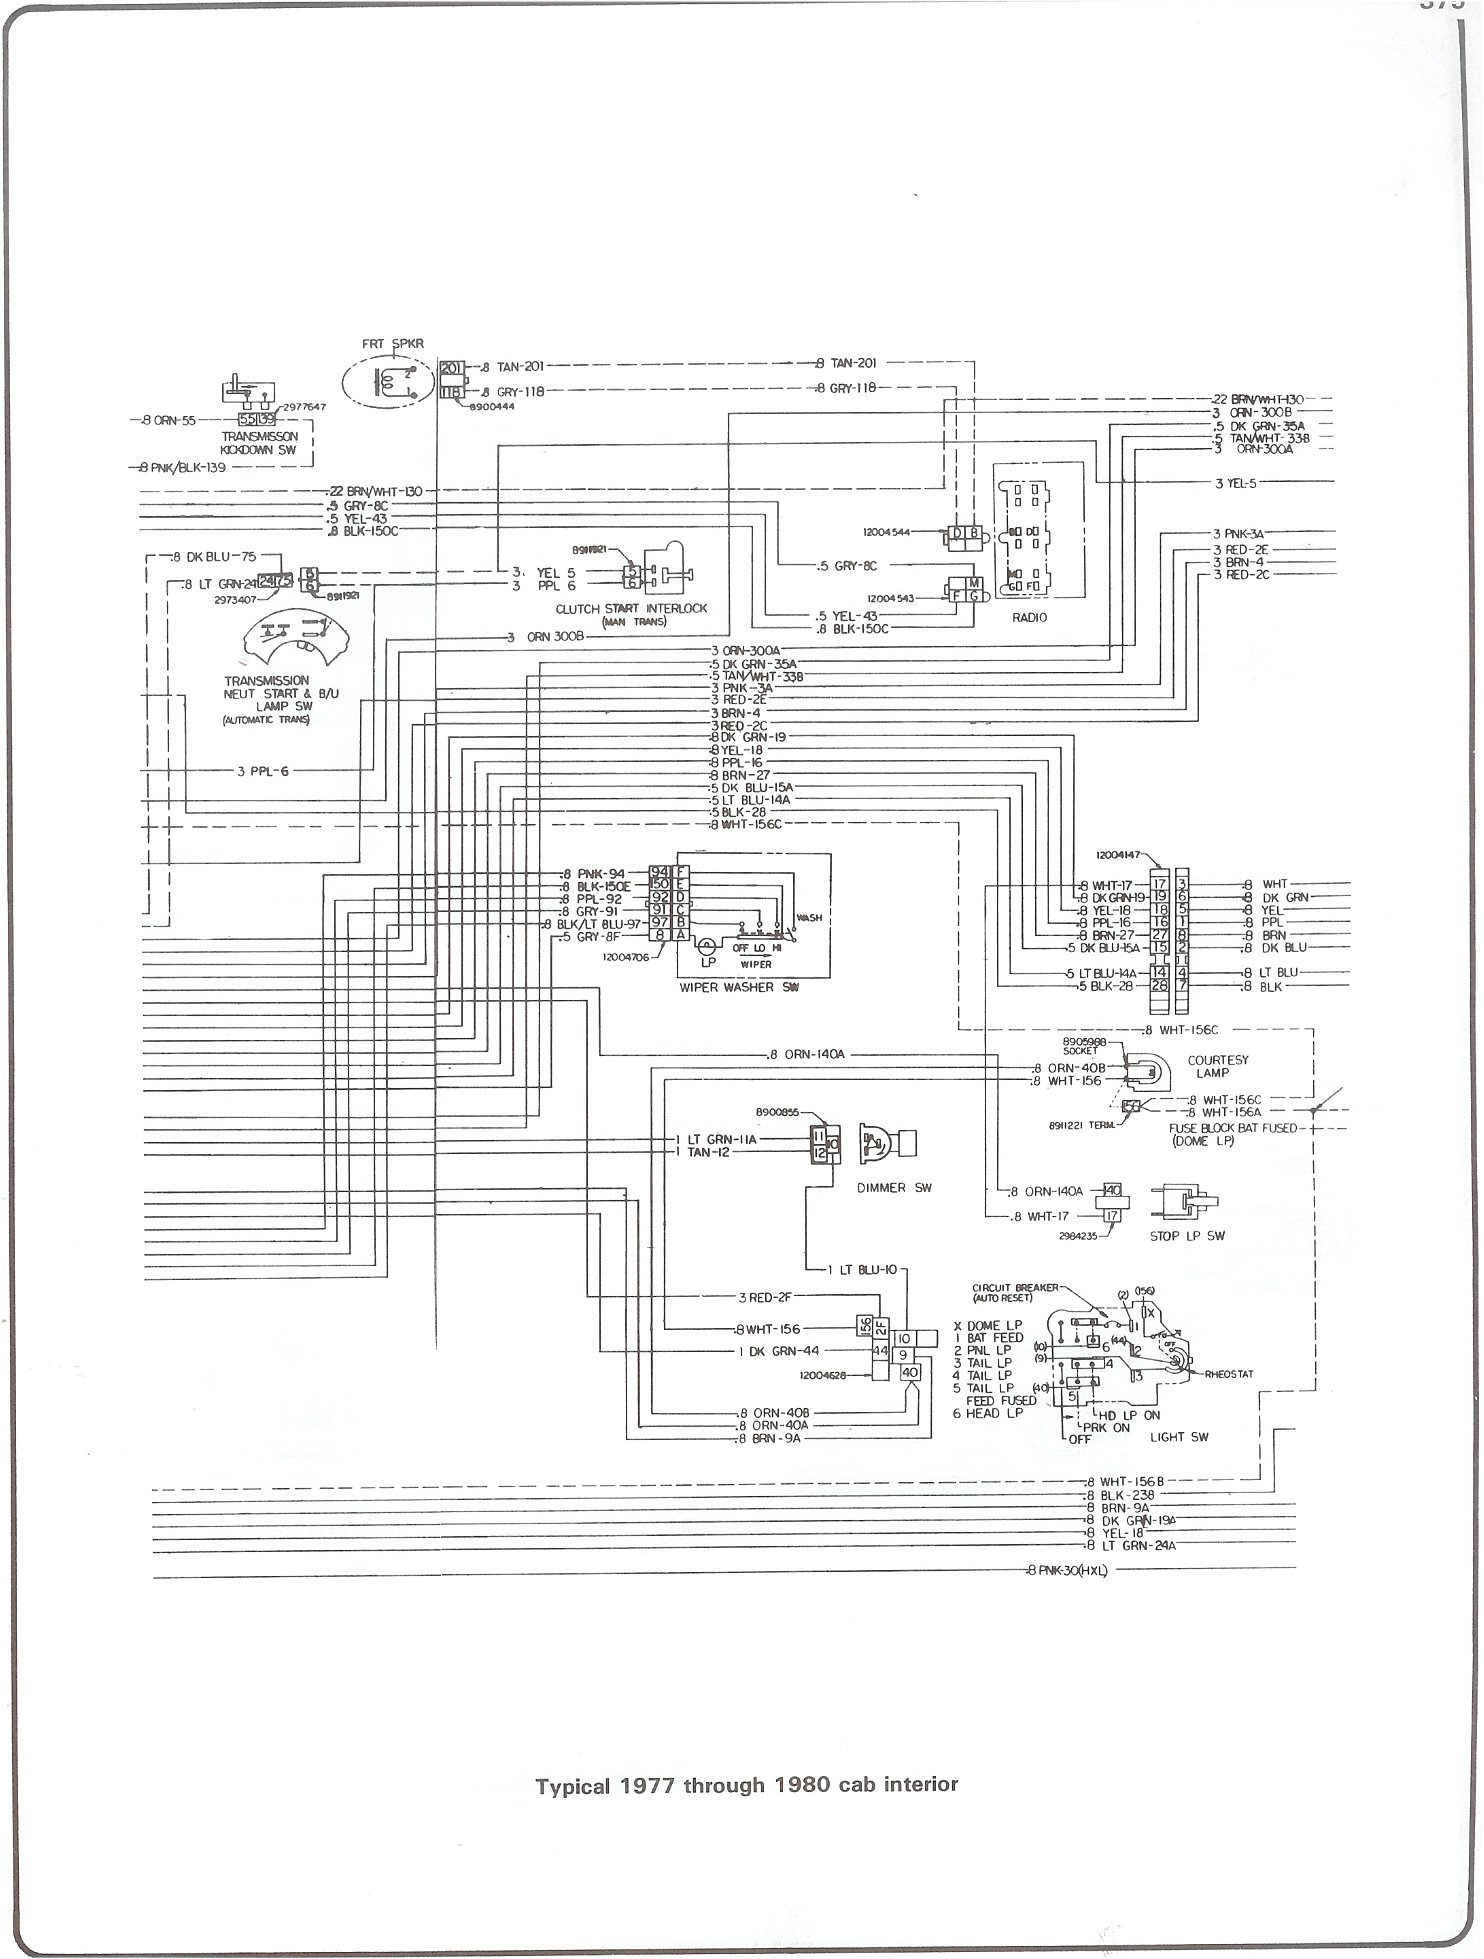 Chevy 305 Engine Wiring Diagram